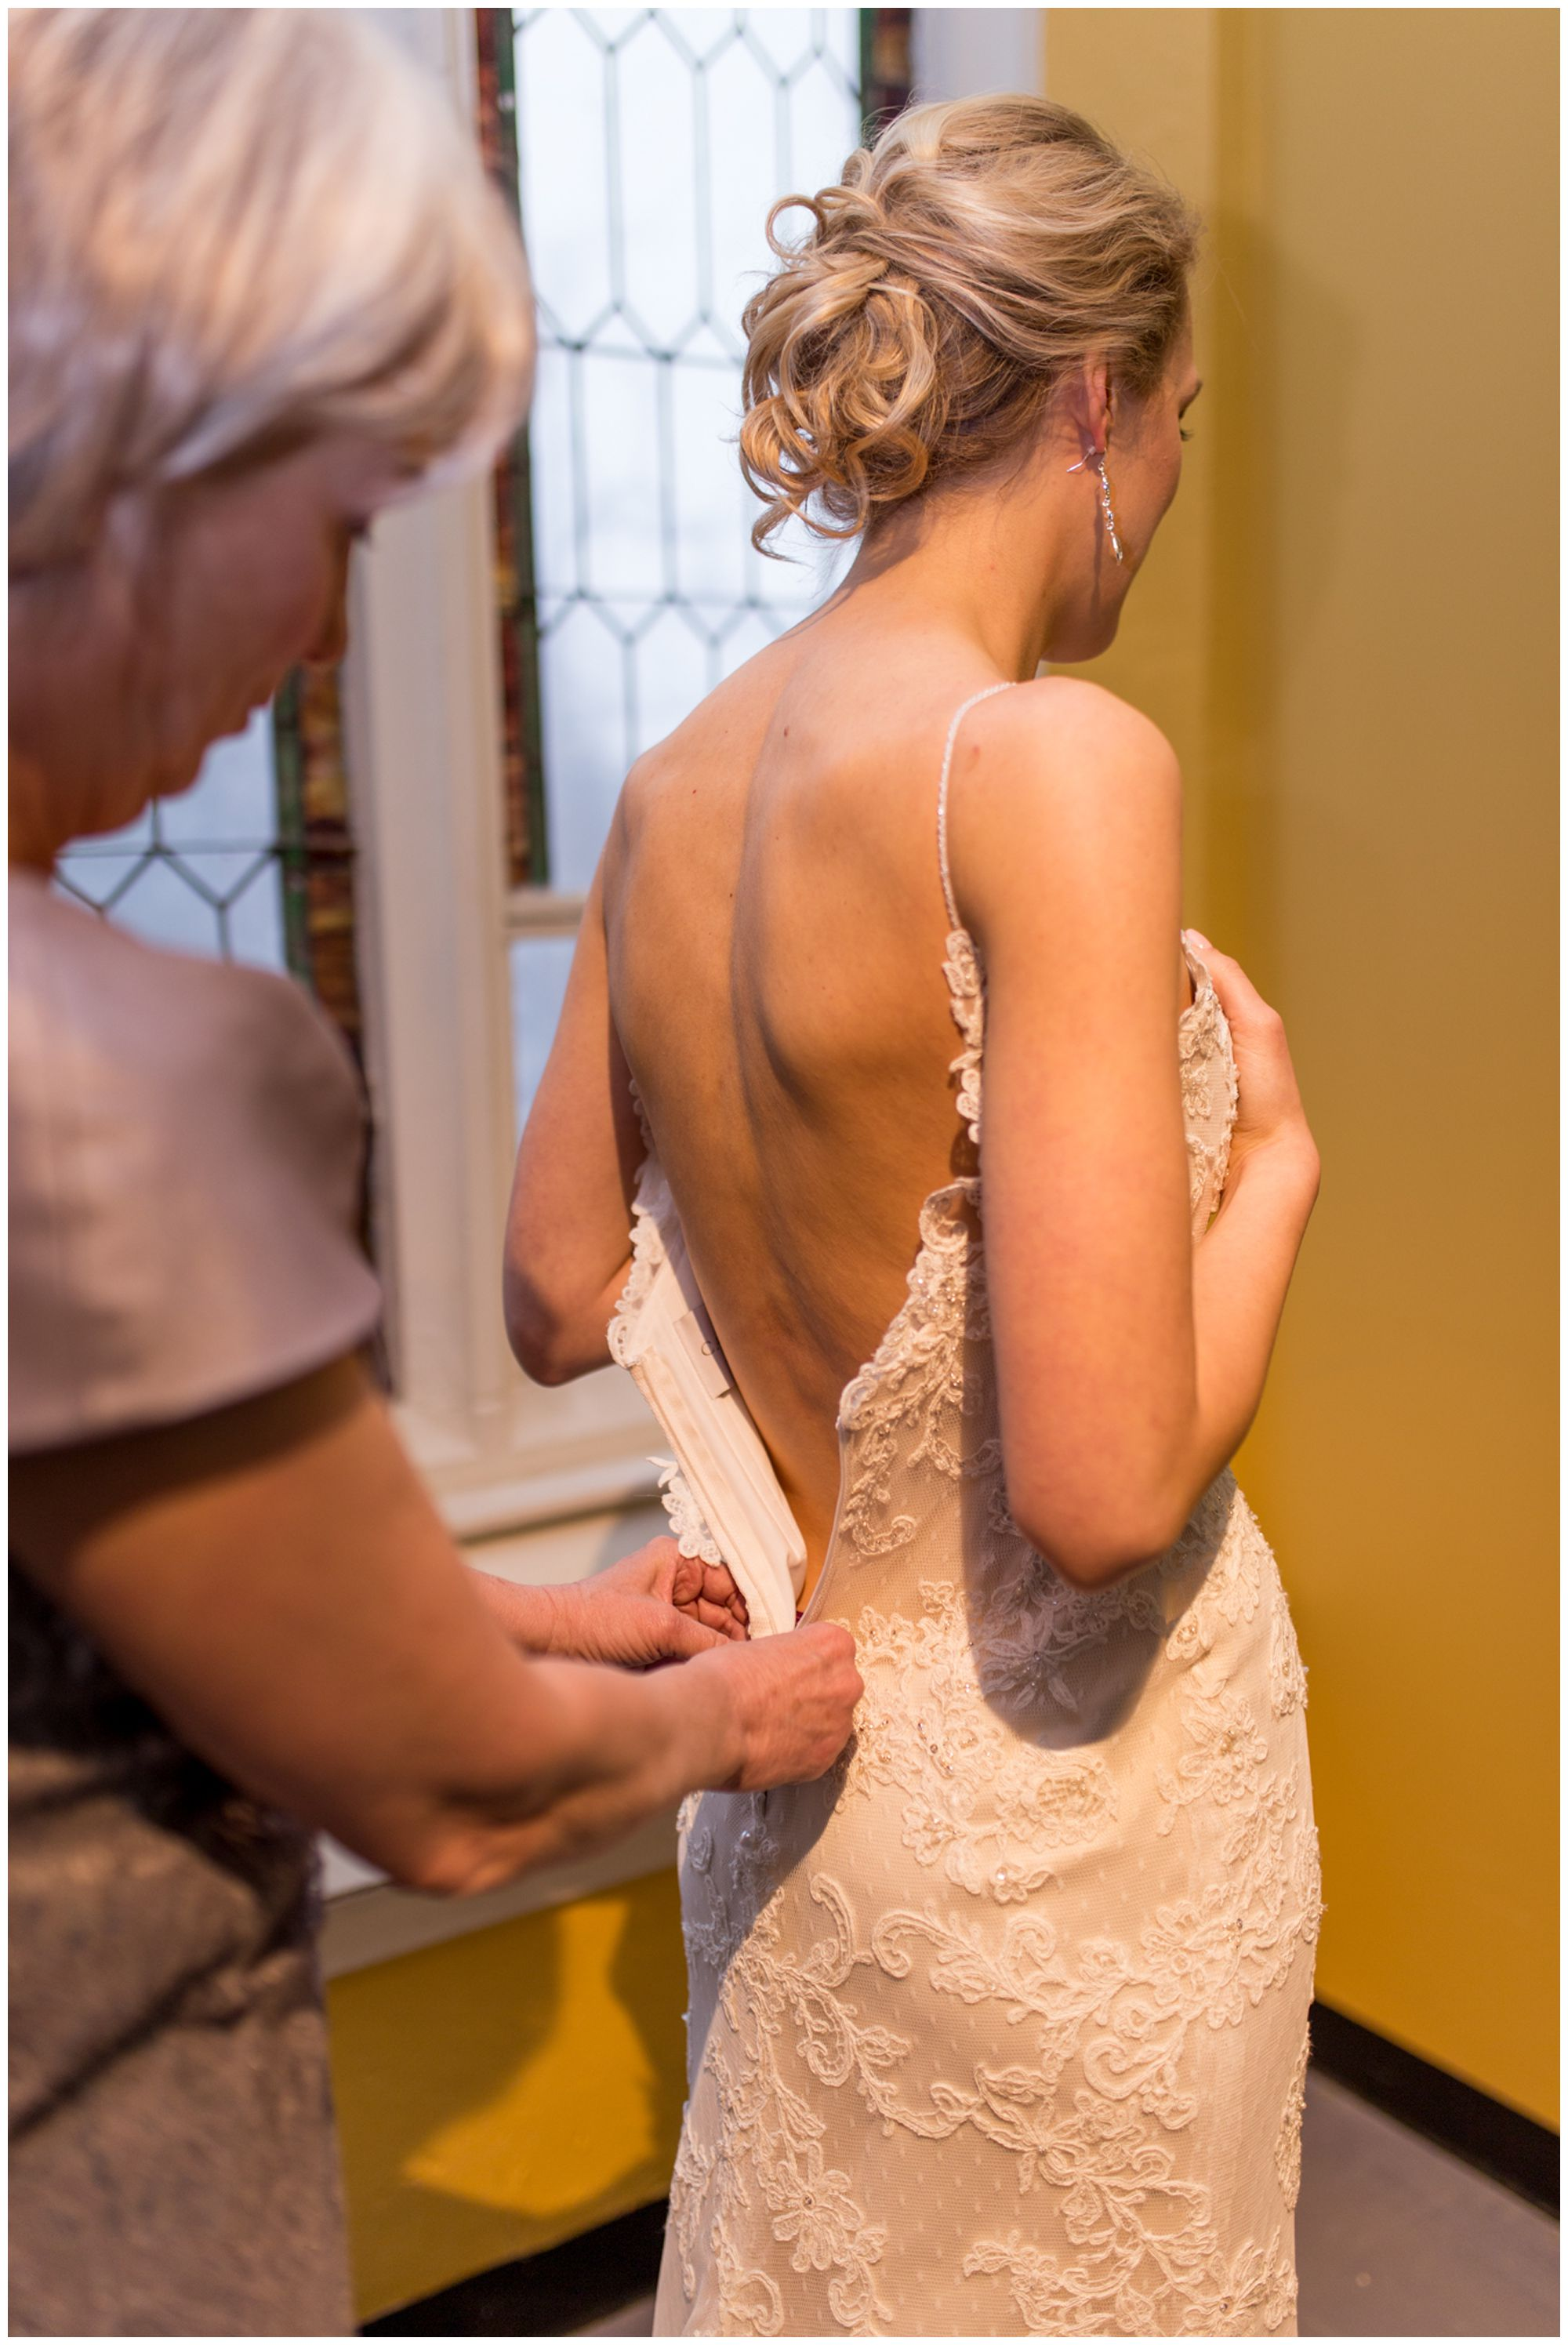 mother of the bride zipping back of bride's dress before wedding at Redeemer Presbyterian Church Indianapolis